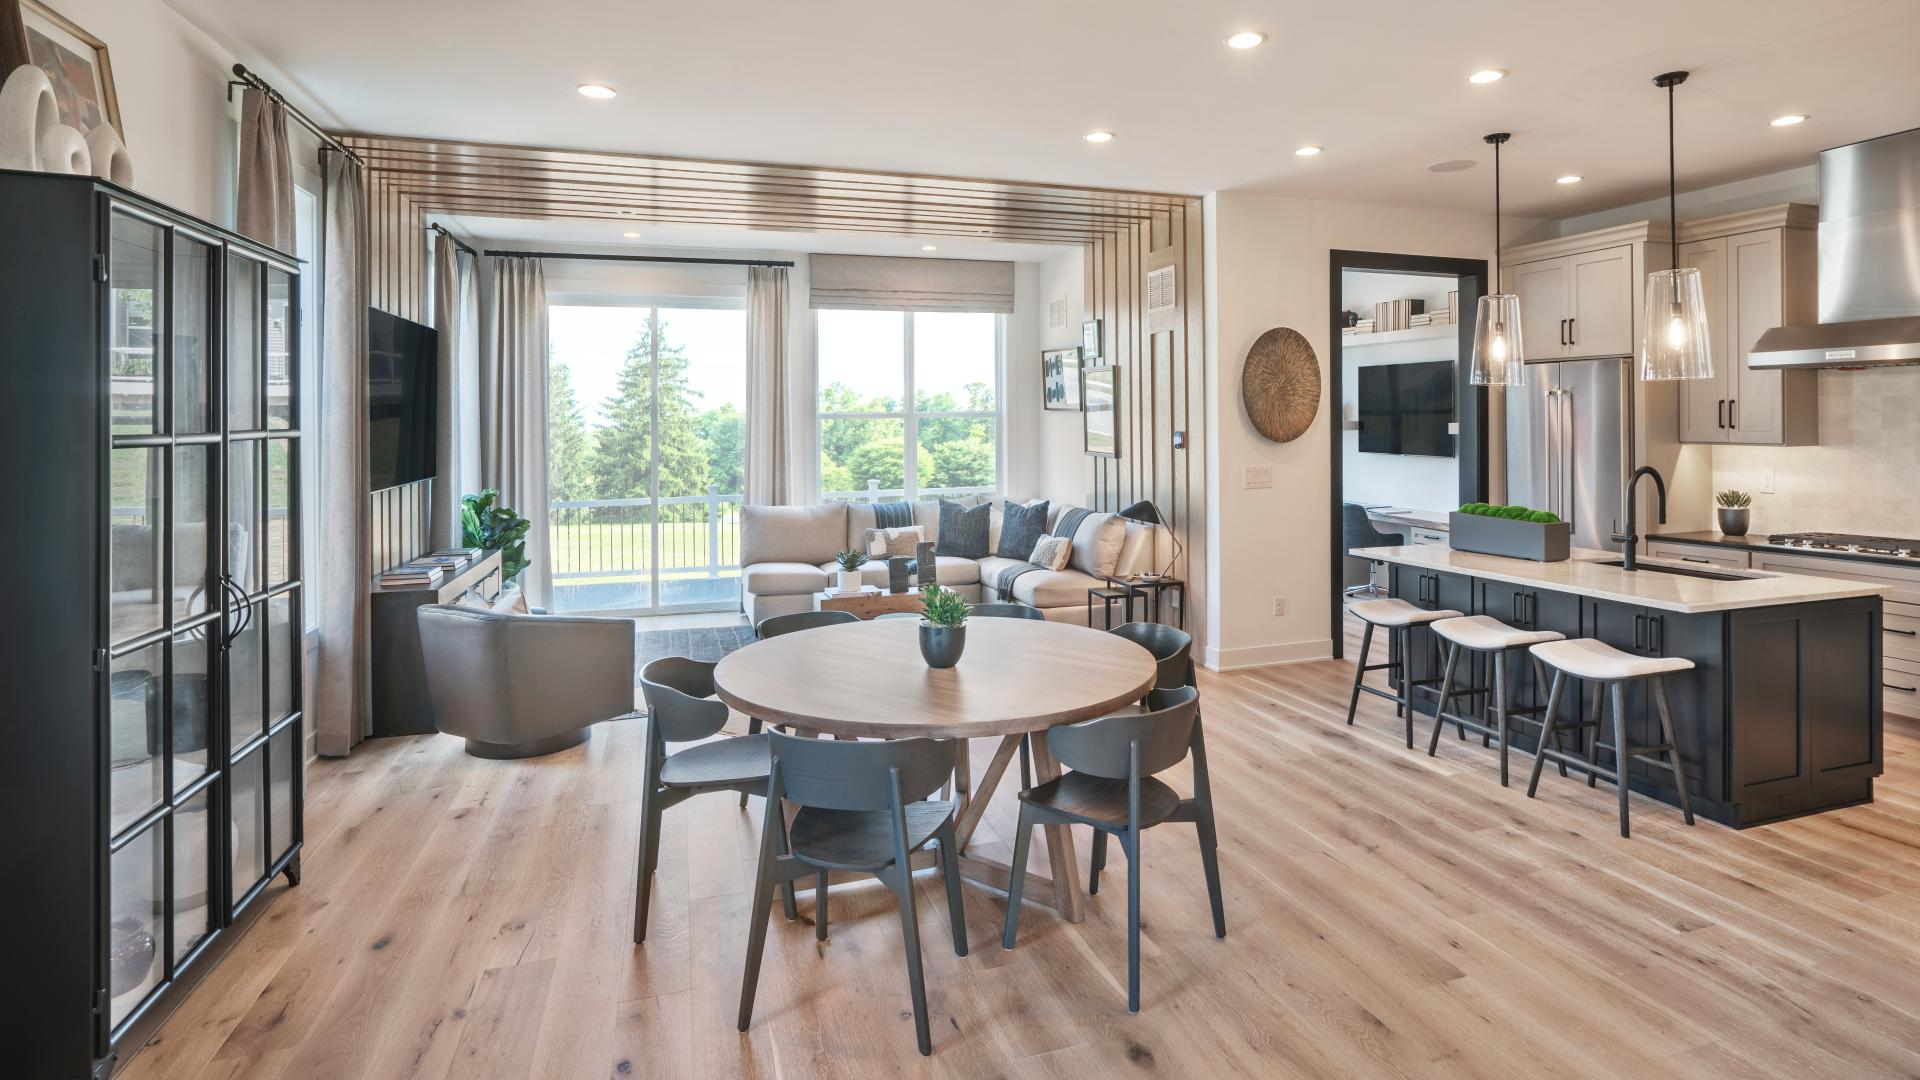 New open-concept home designs available